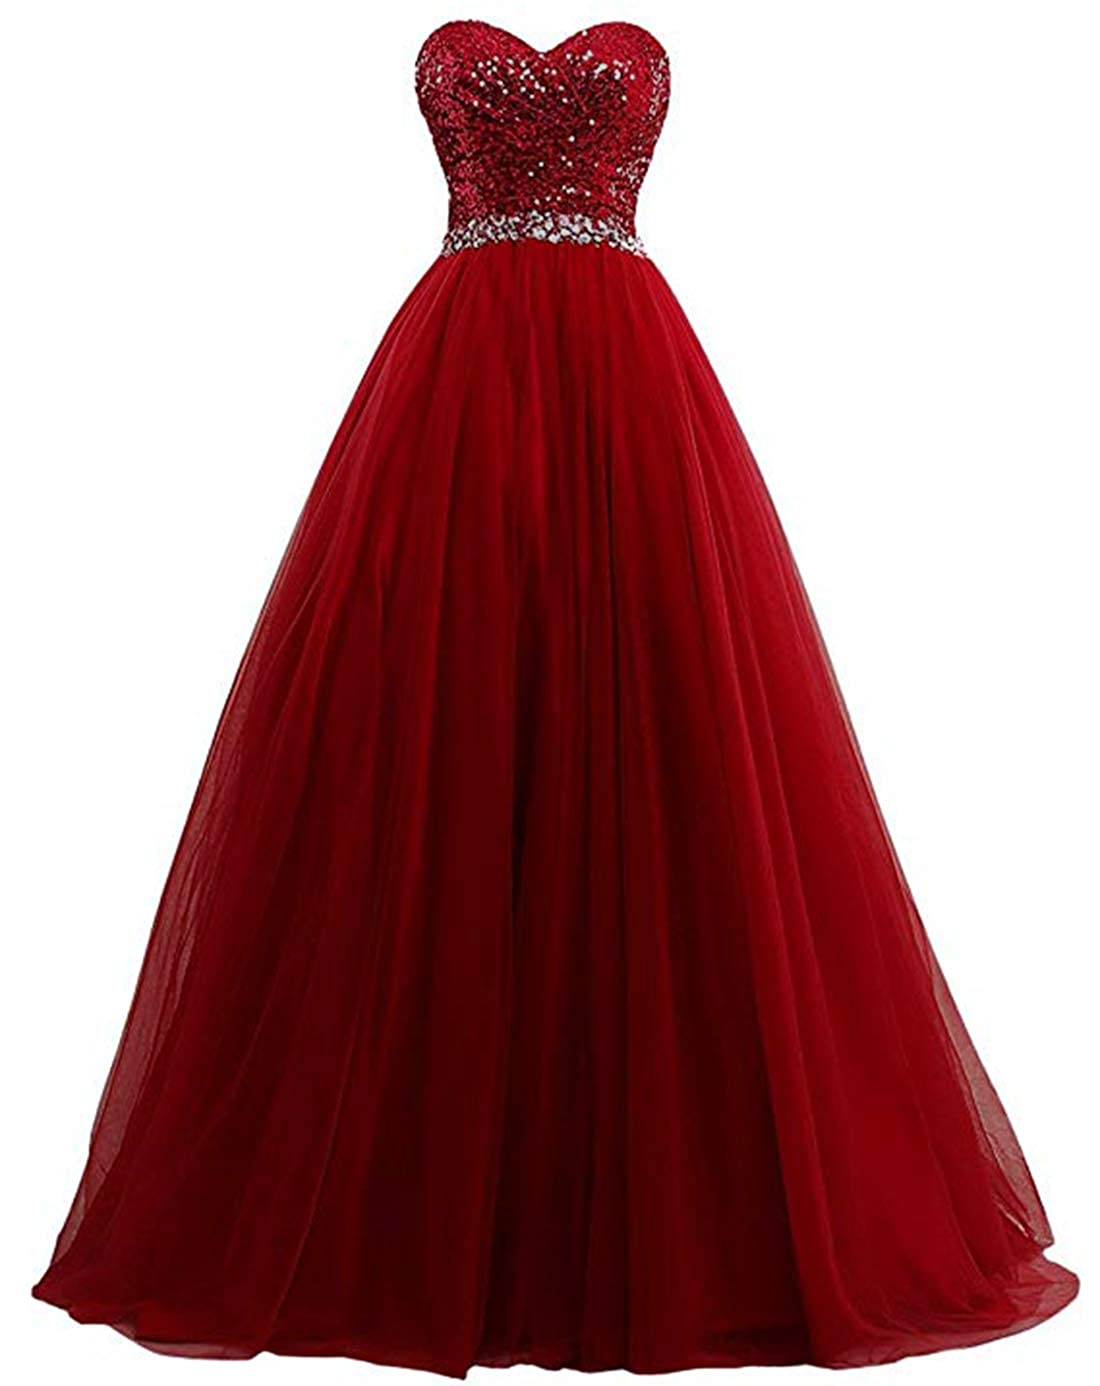 Burgundy olise bridal Sexy Sweetheart Women's A Line Long Prom Dresses Sequin Party Formal Dresses Ball Gowns